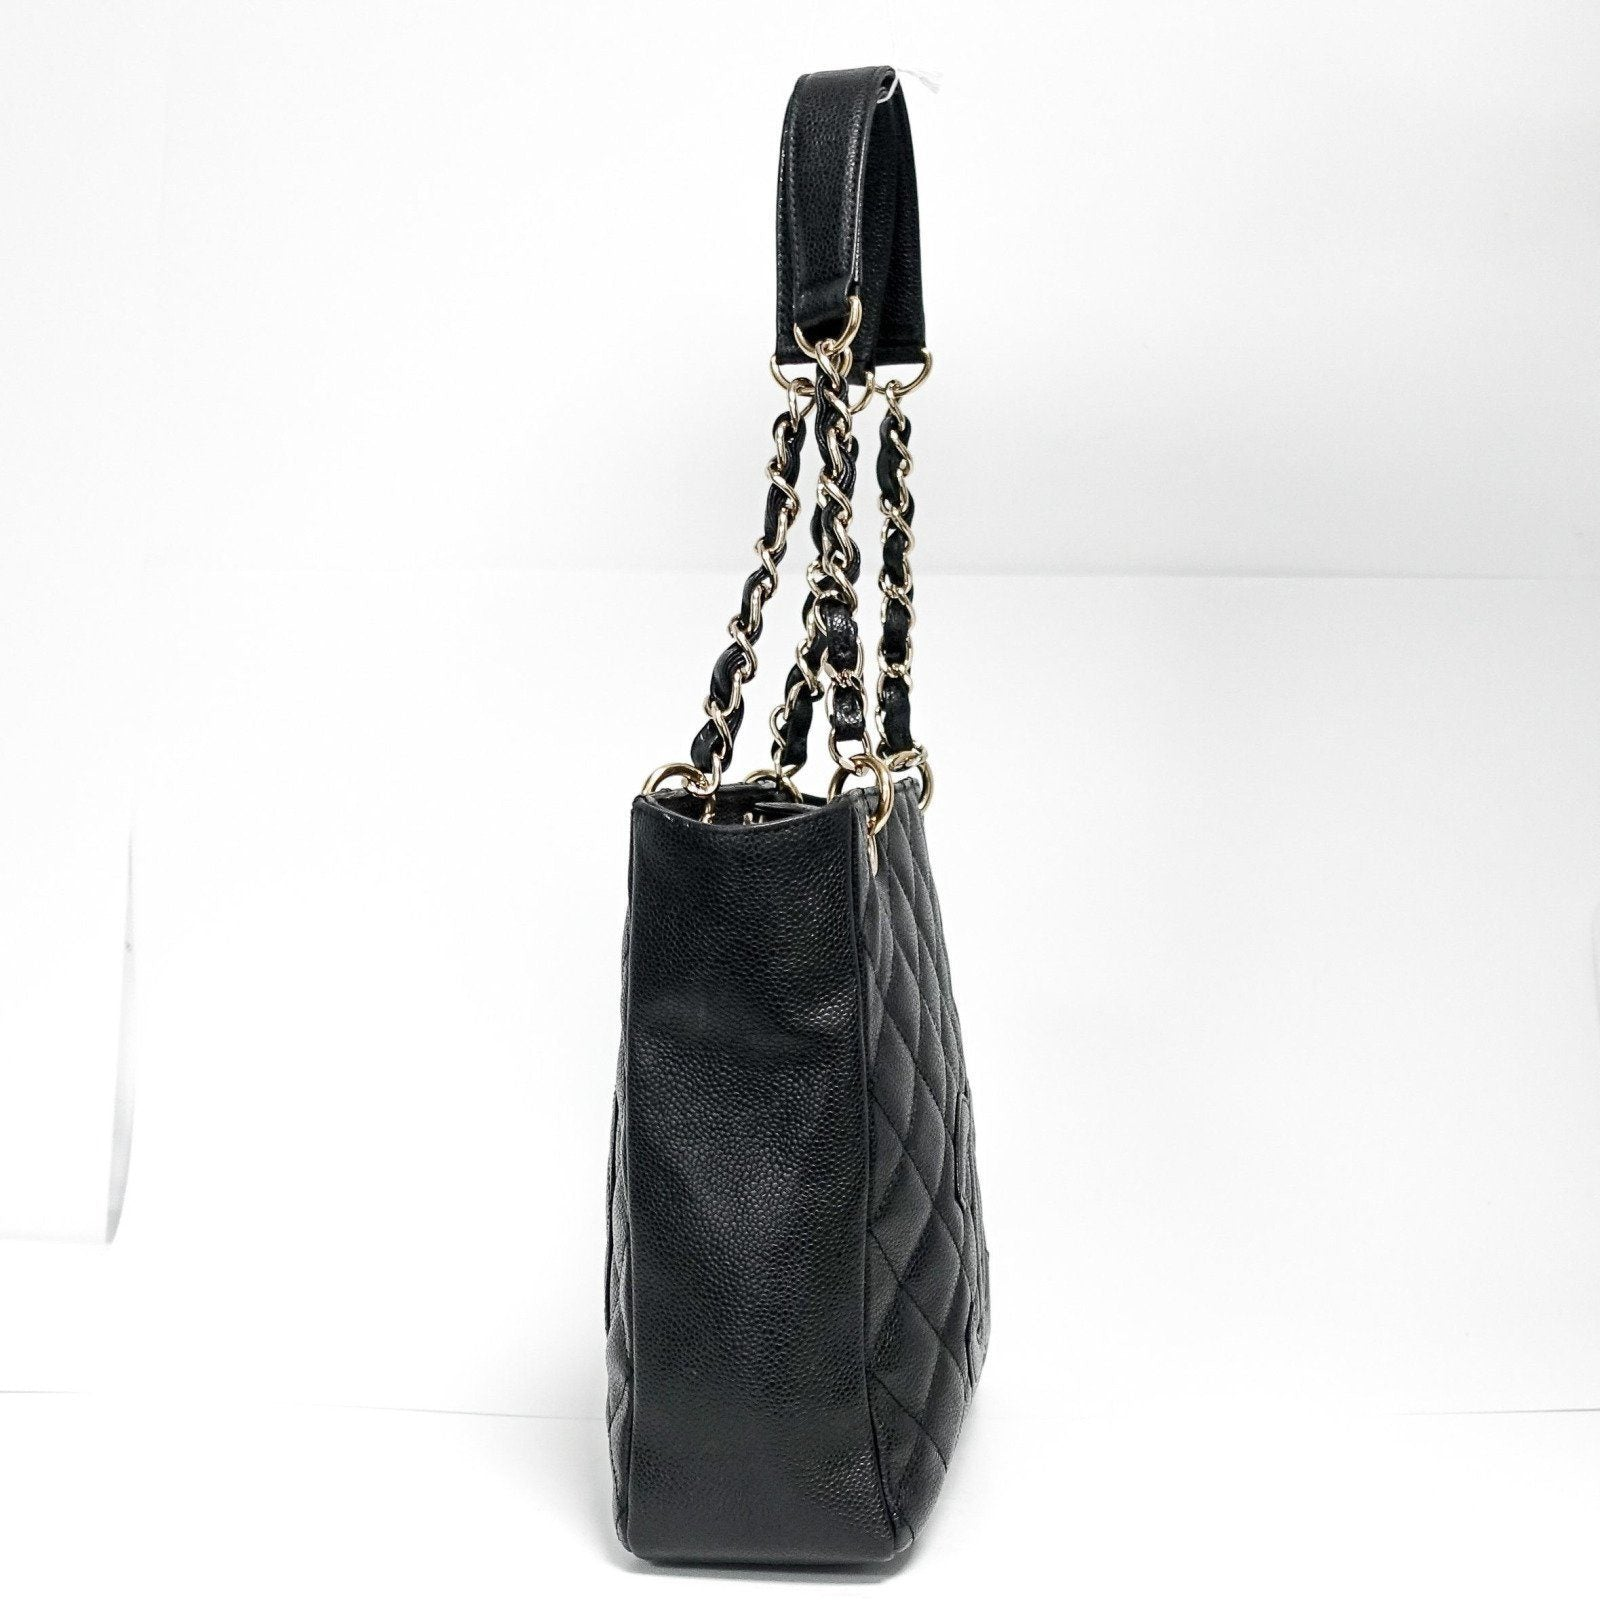 546d10fec ... Chanel Black Caviar Leather Petite Shopping Tote Bags Chanel ...